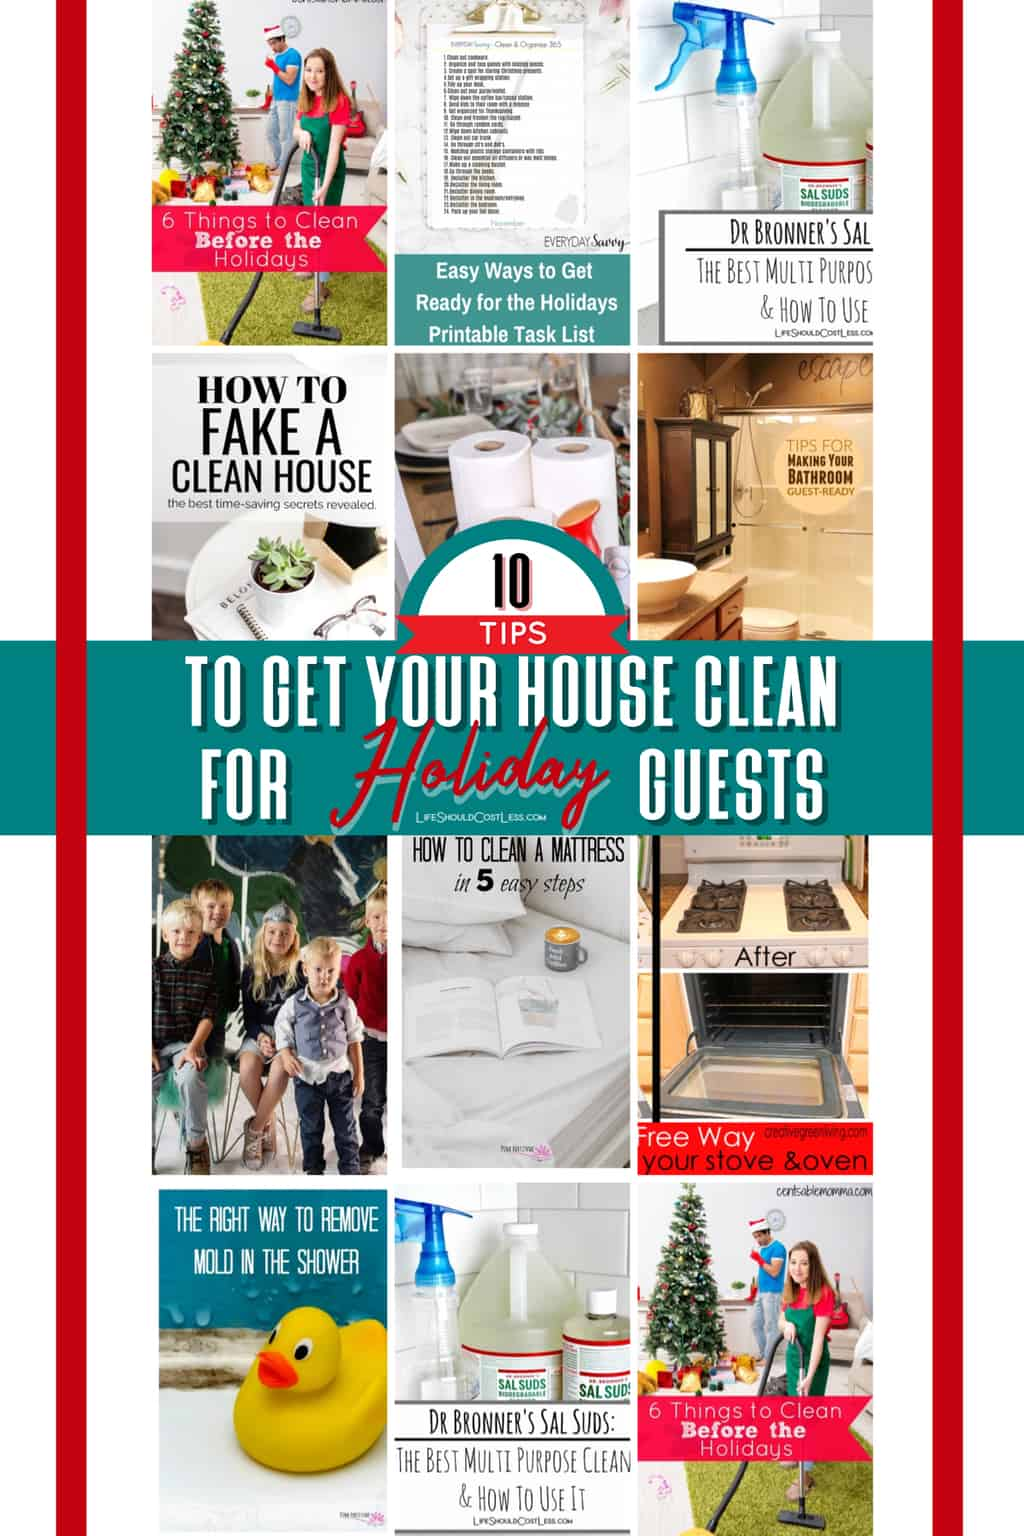 Ten Tips For Getting Your House Clean For Holiday Guests